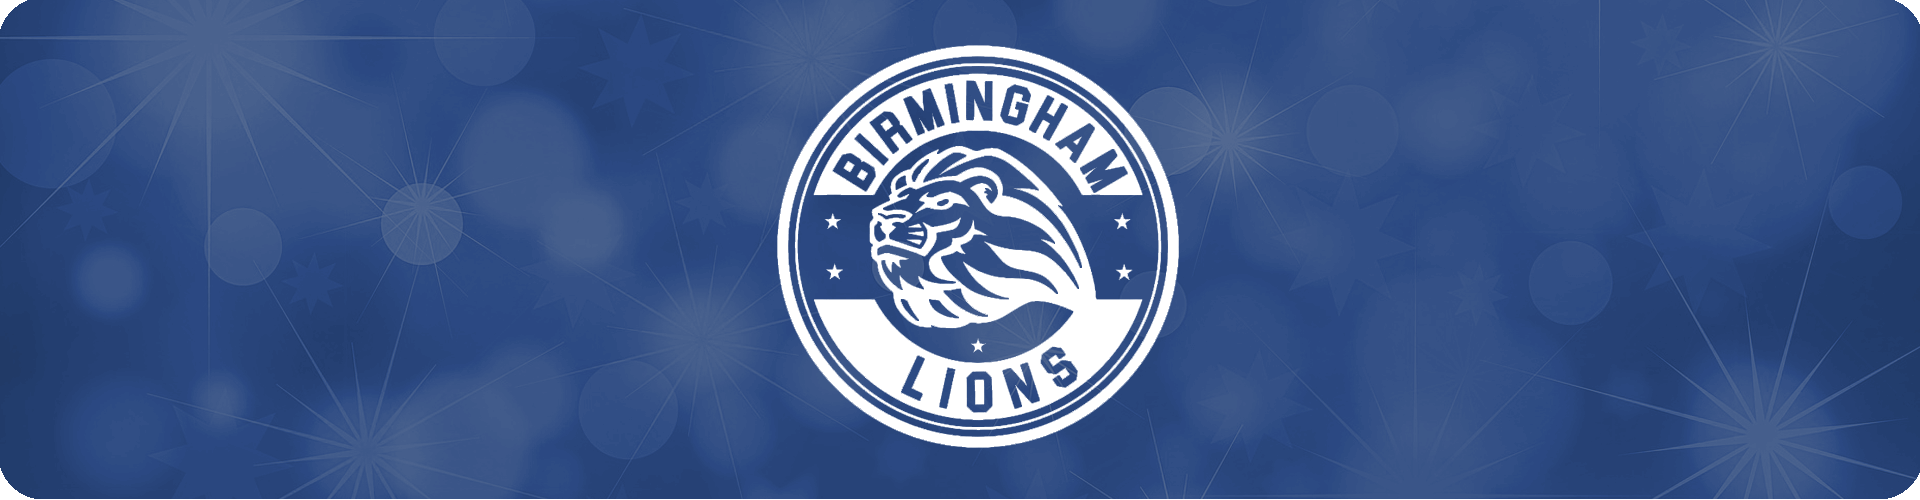 birmingham lions womens american football team logo